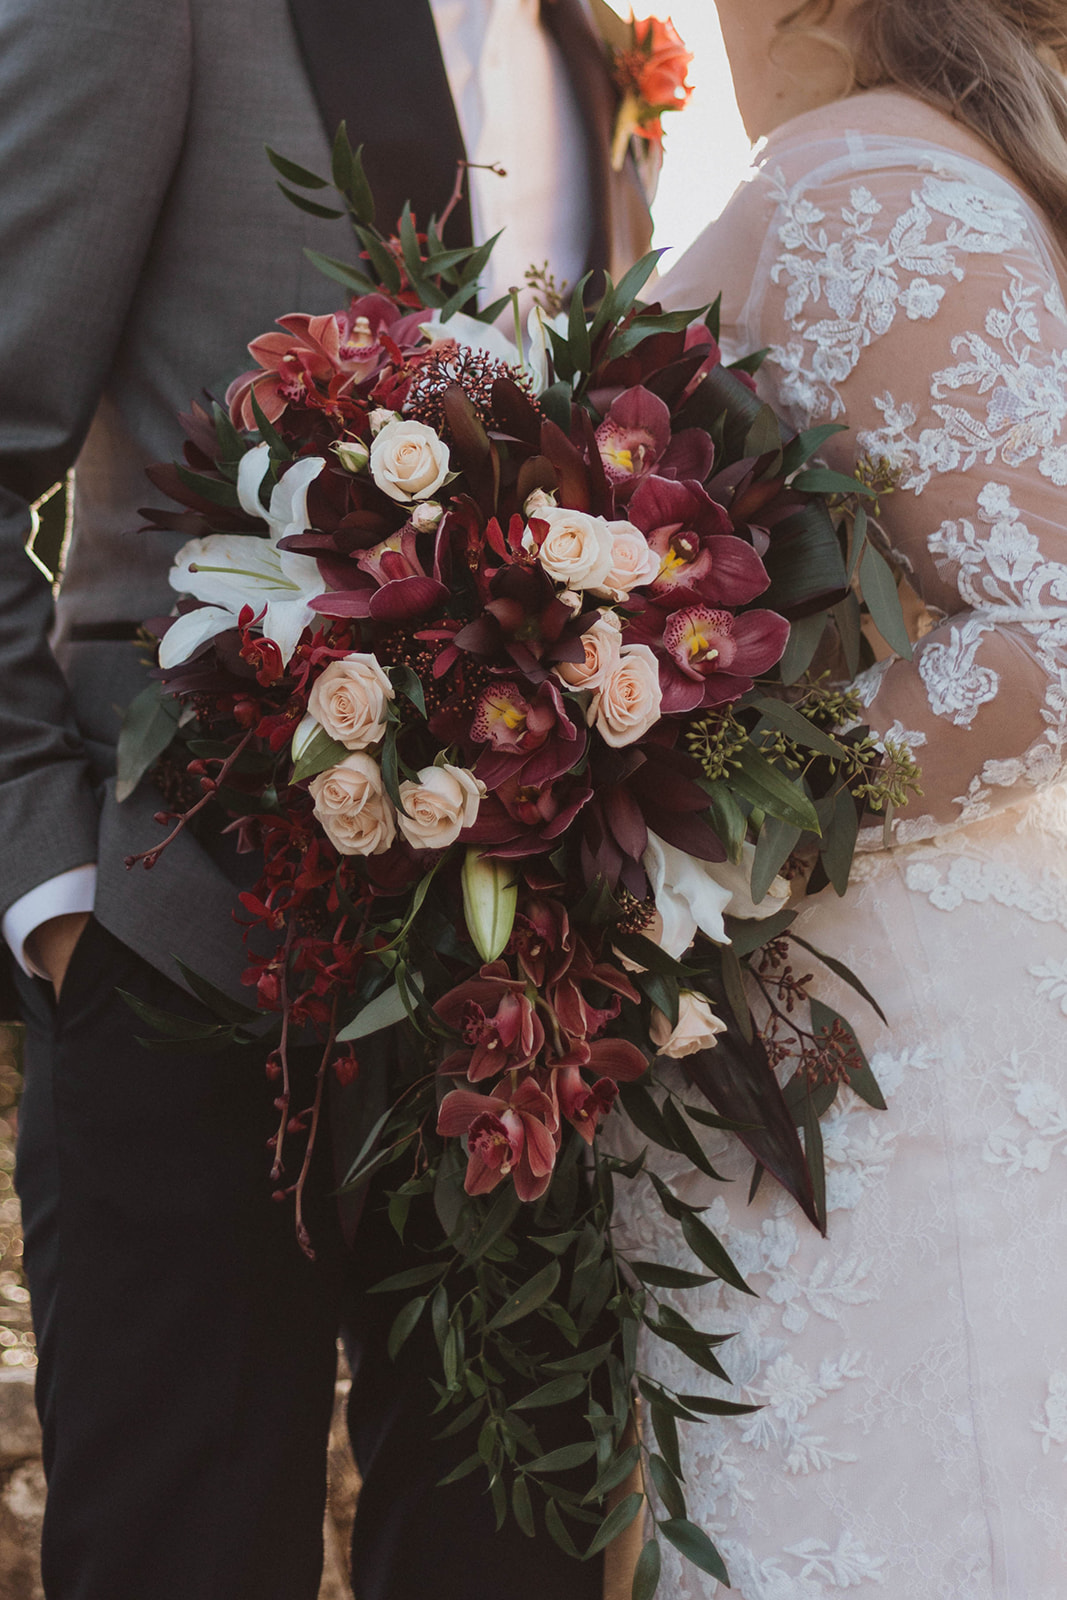 Bridal bouquet of burgundy roses, calla lillies and eucalyptus by Niki Trading in Vancouver